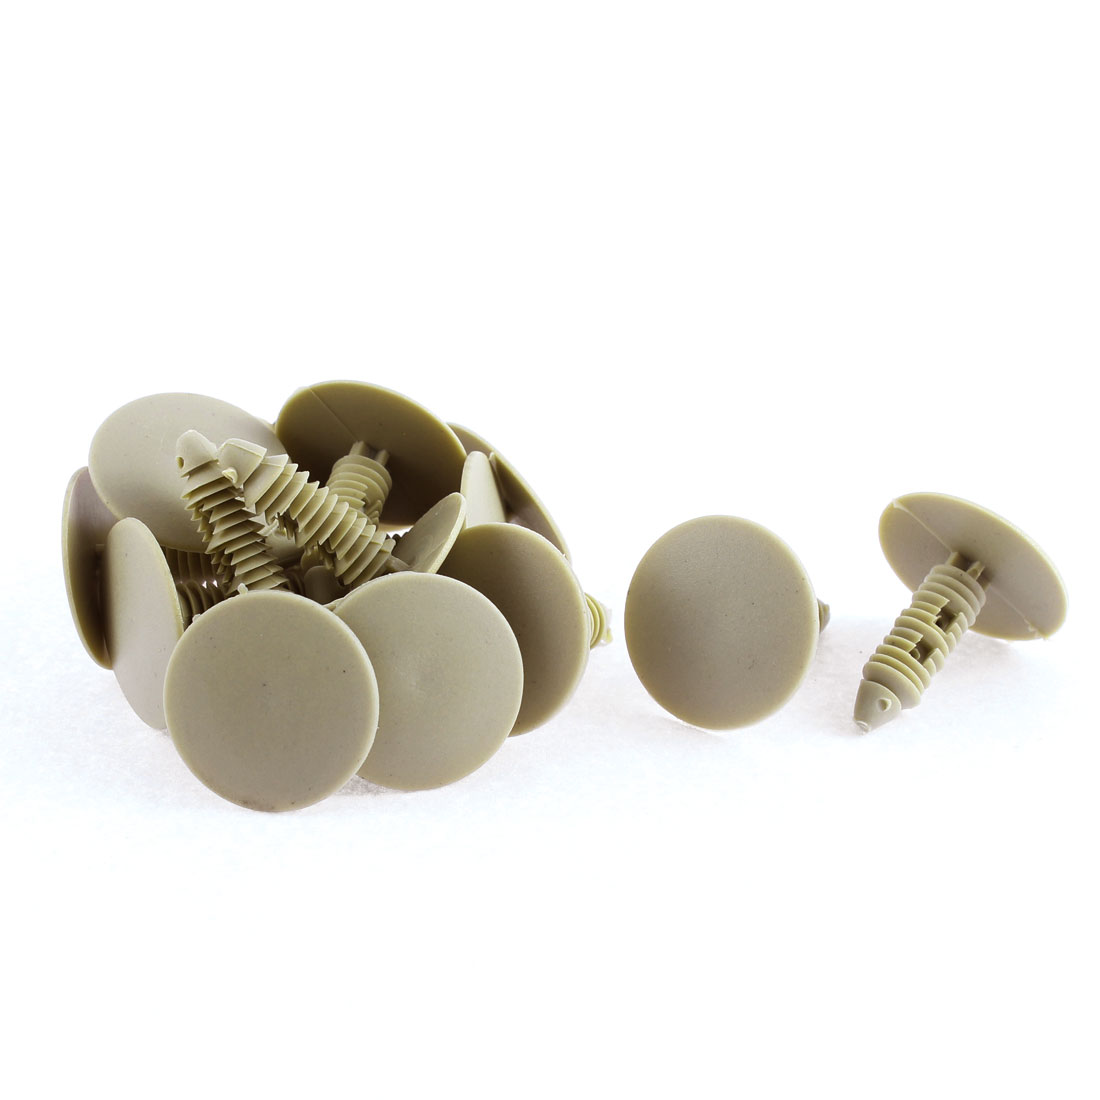 15 Pcs Khaki Plastic Door Seal Nail Rivet Trim Mat Clip for Buick